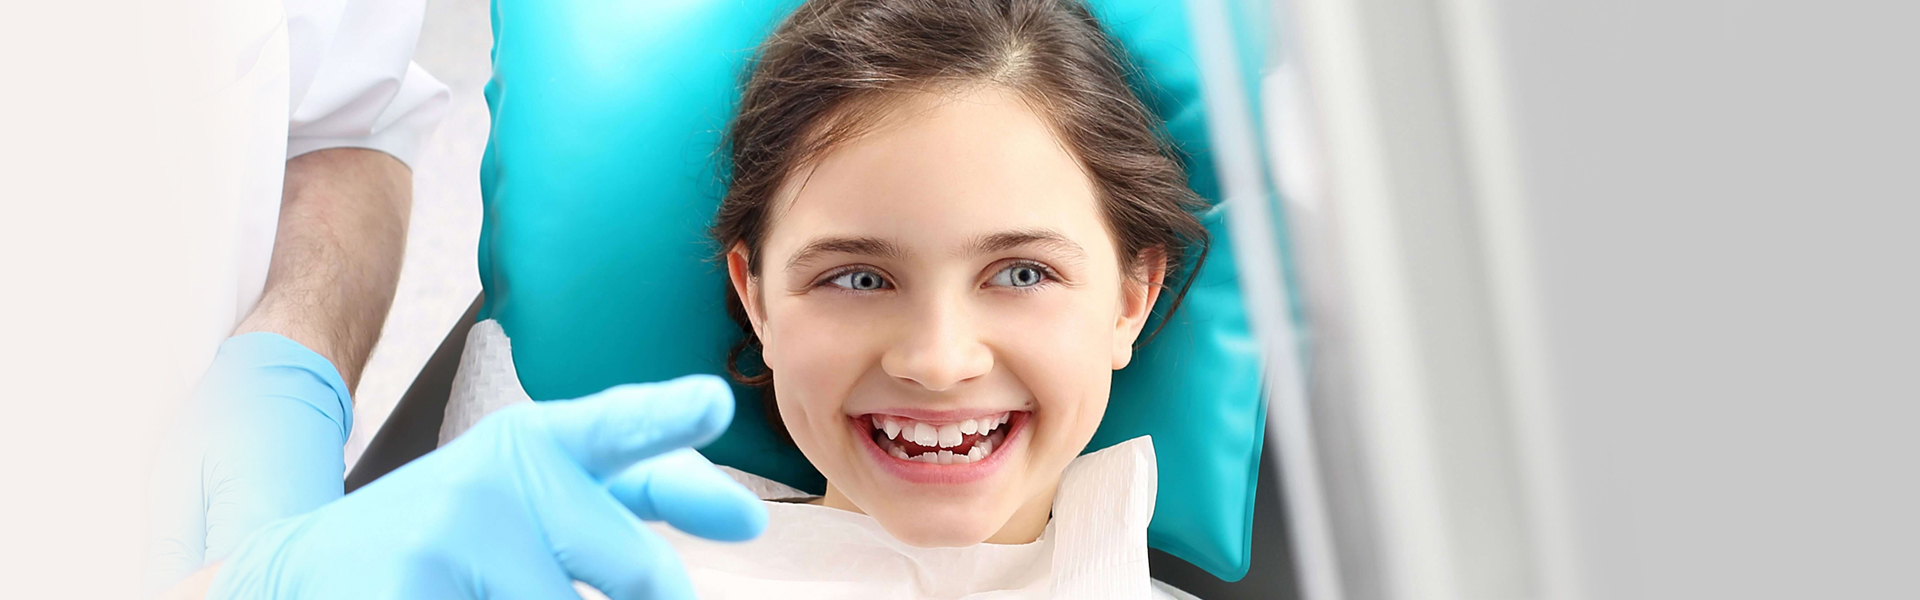 Radiographic Imaging Essential to Detect Issues in Children's Mouths